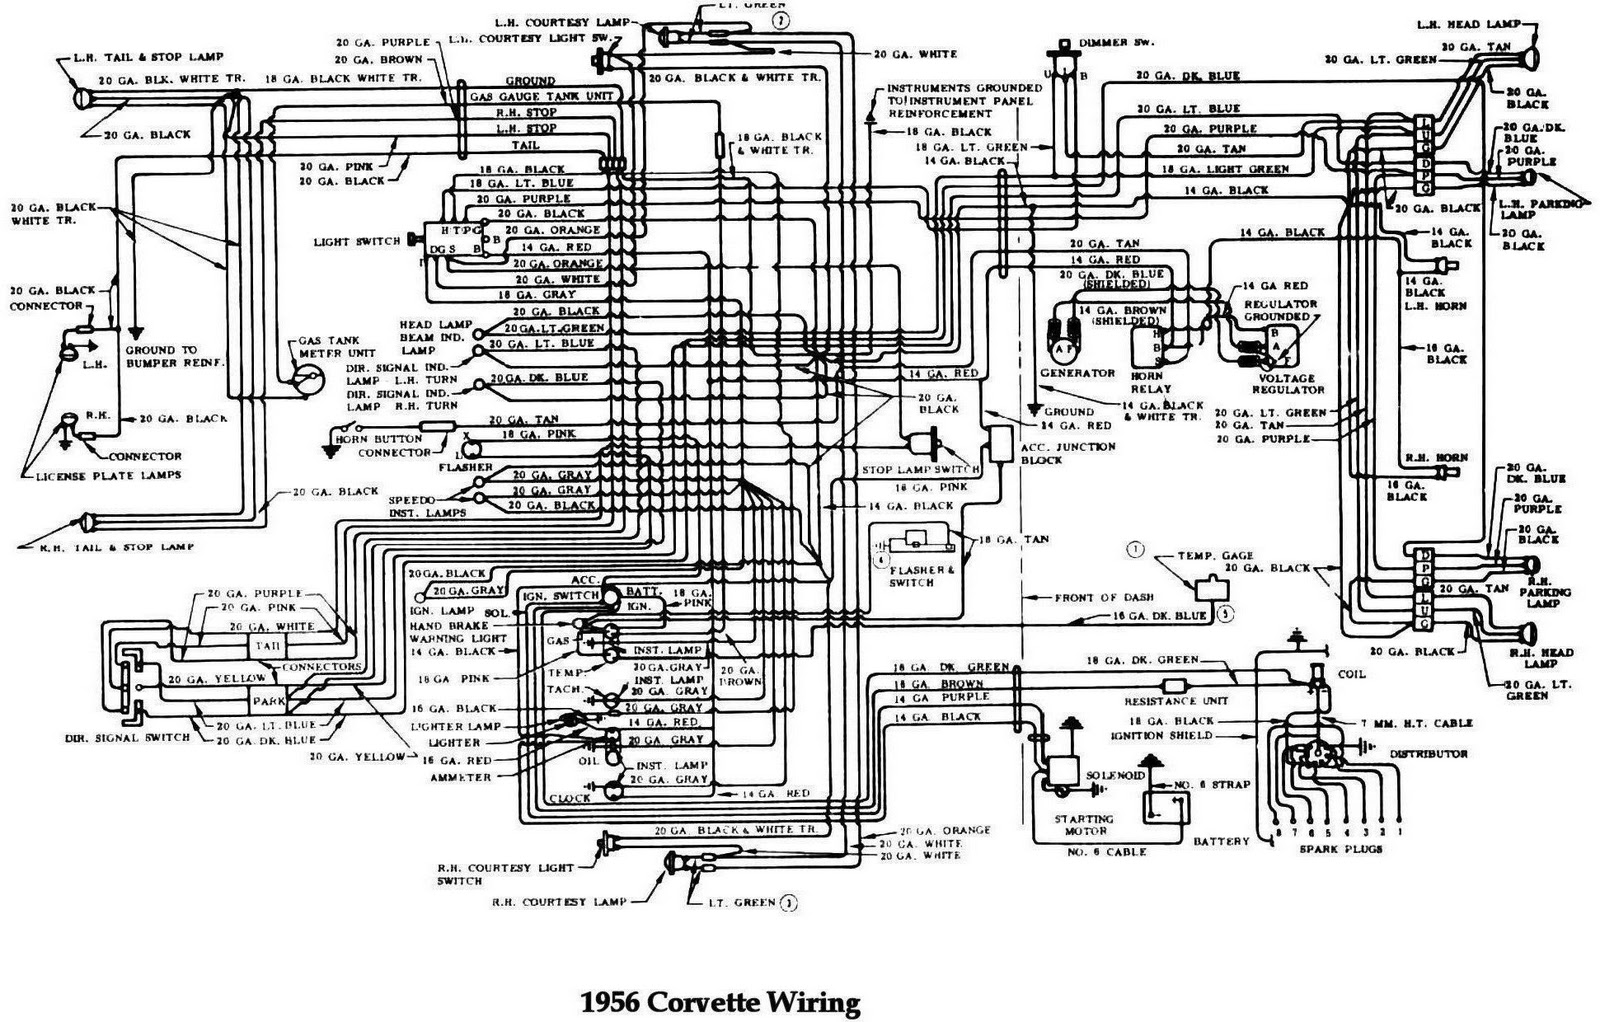 1956 Cadillac Steering Diagram Wiring Schematic Diagrams Spark Plug June 2011 All About 1965 1953 Ford